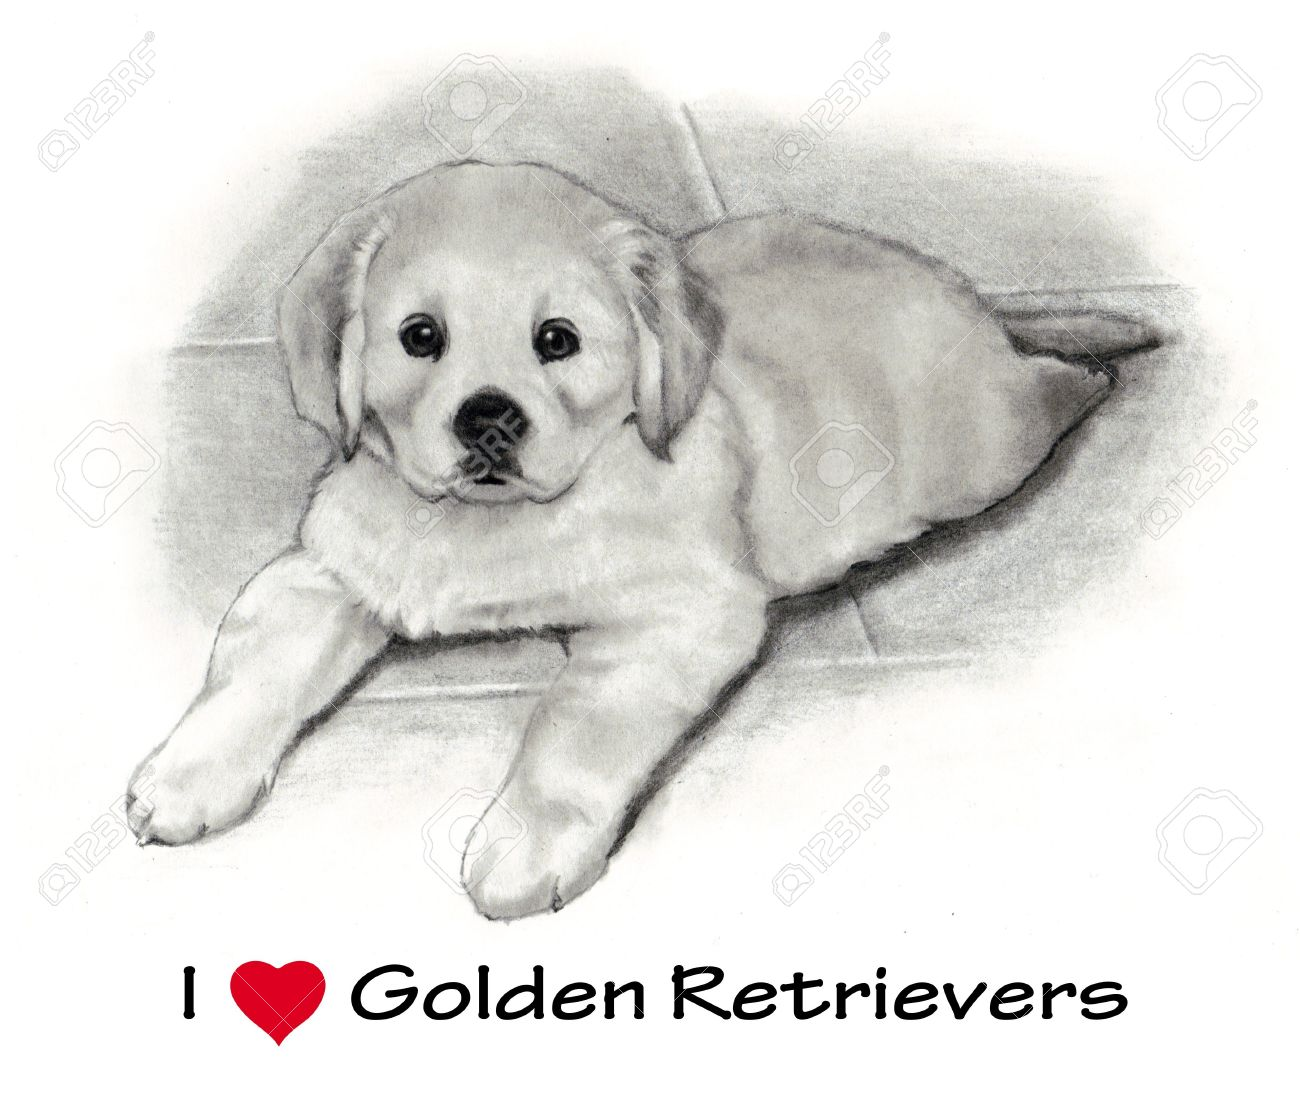 golden retriever puppy freehand pencil drawing stock photo 10880278